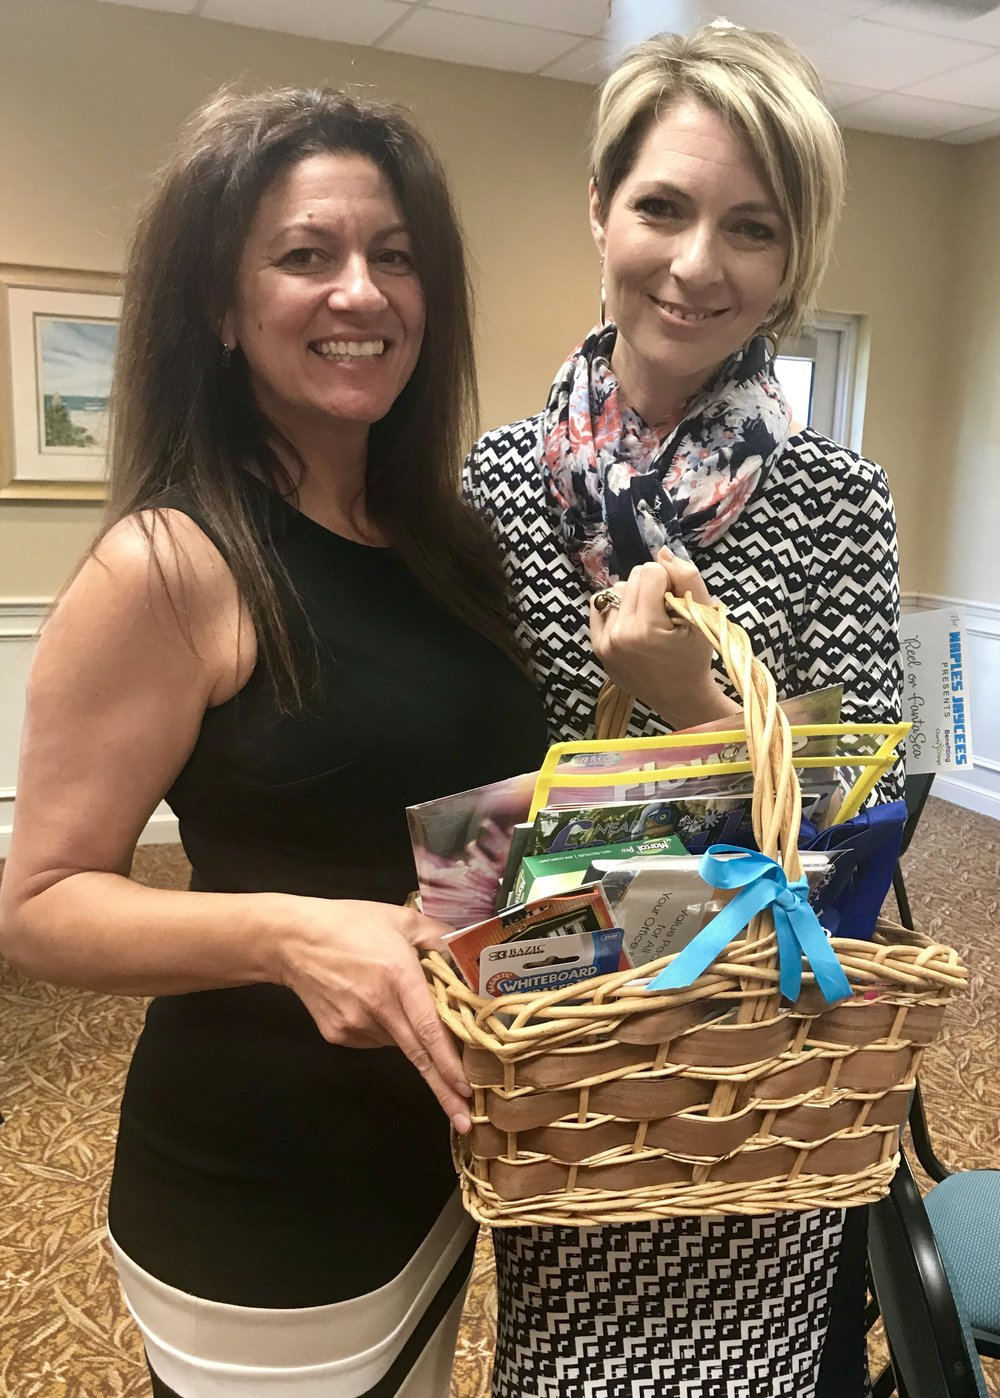 Melissa Rocchio and Erica Castner at Women's Network of Collier County May Luncheon on May 8, 2018.